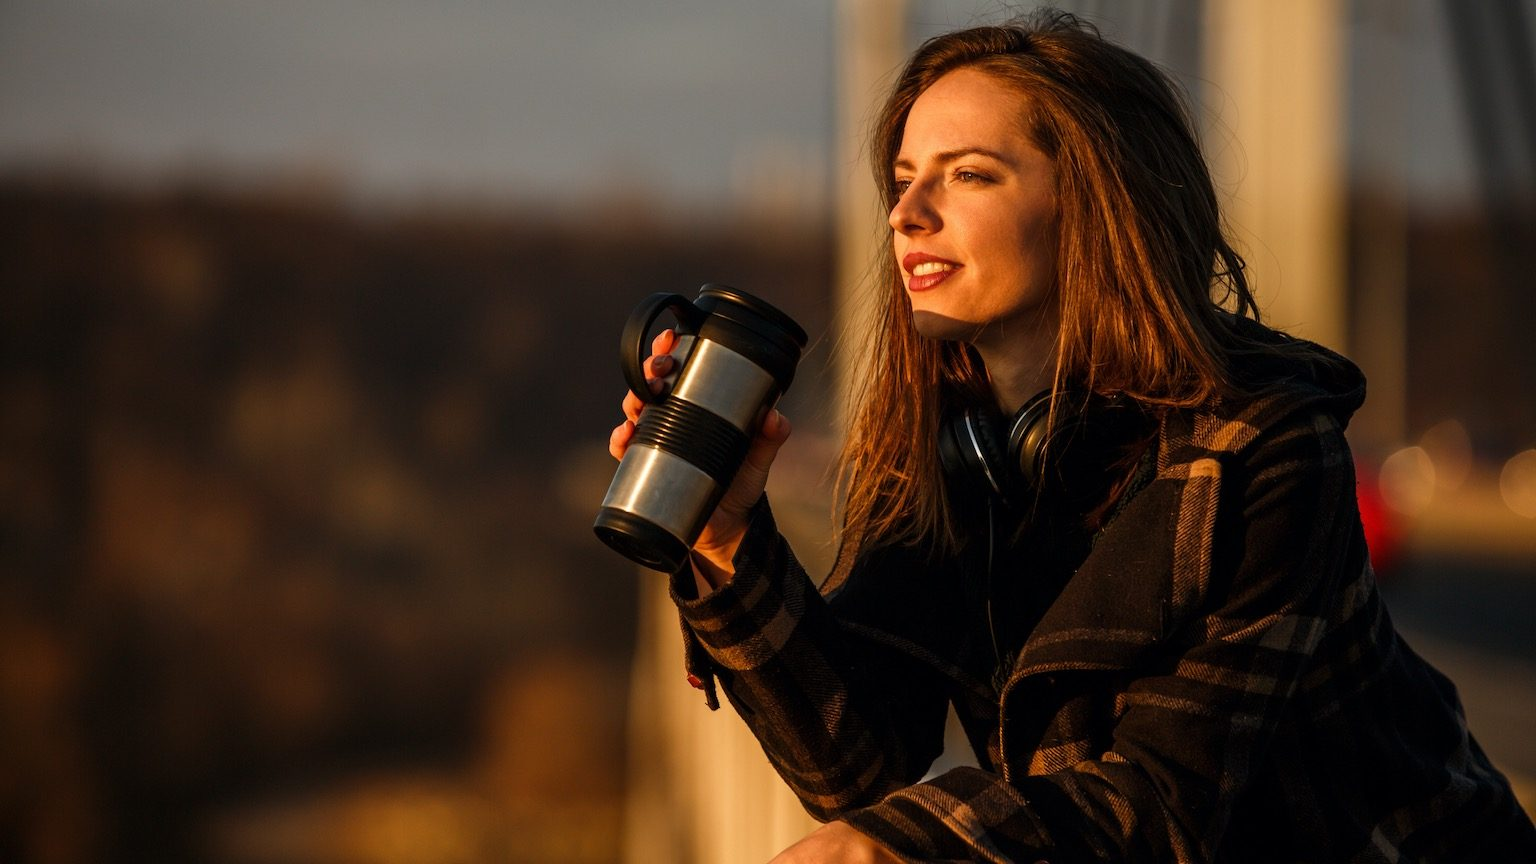 Young brunette woman holding thermos cup, enjoying sunny winter afternoon in the city.